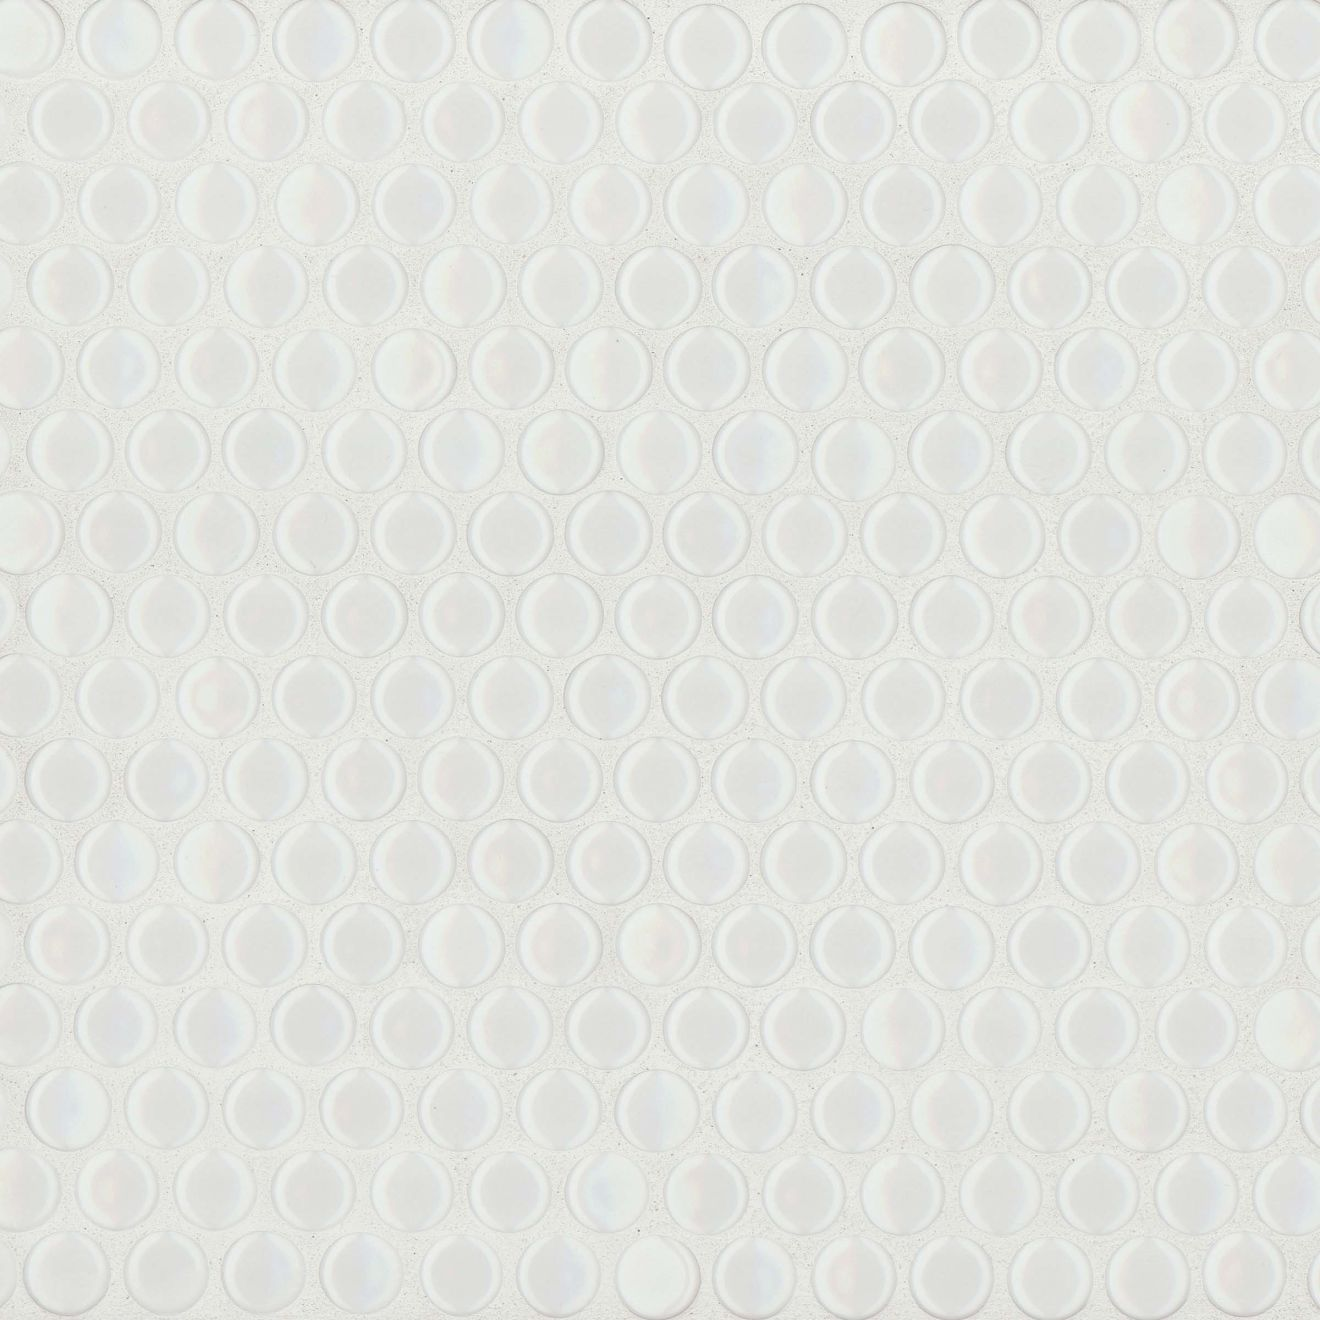 """Shop 360 3/4"""" x 3/4"""" Floor & Wall Mosaic in Pumice from Bedrosians on Openhaus"""